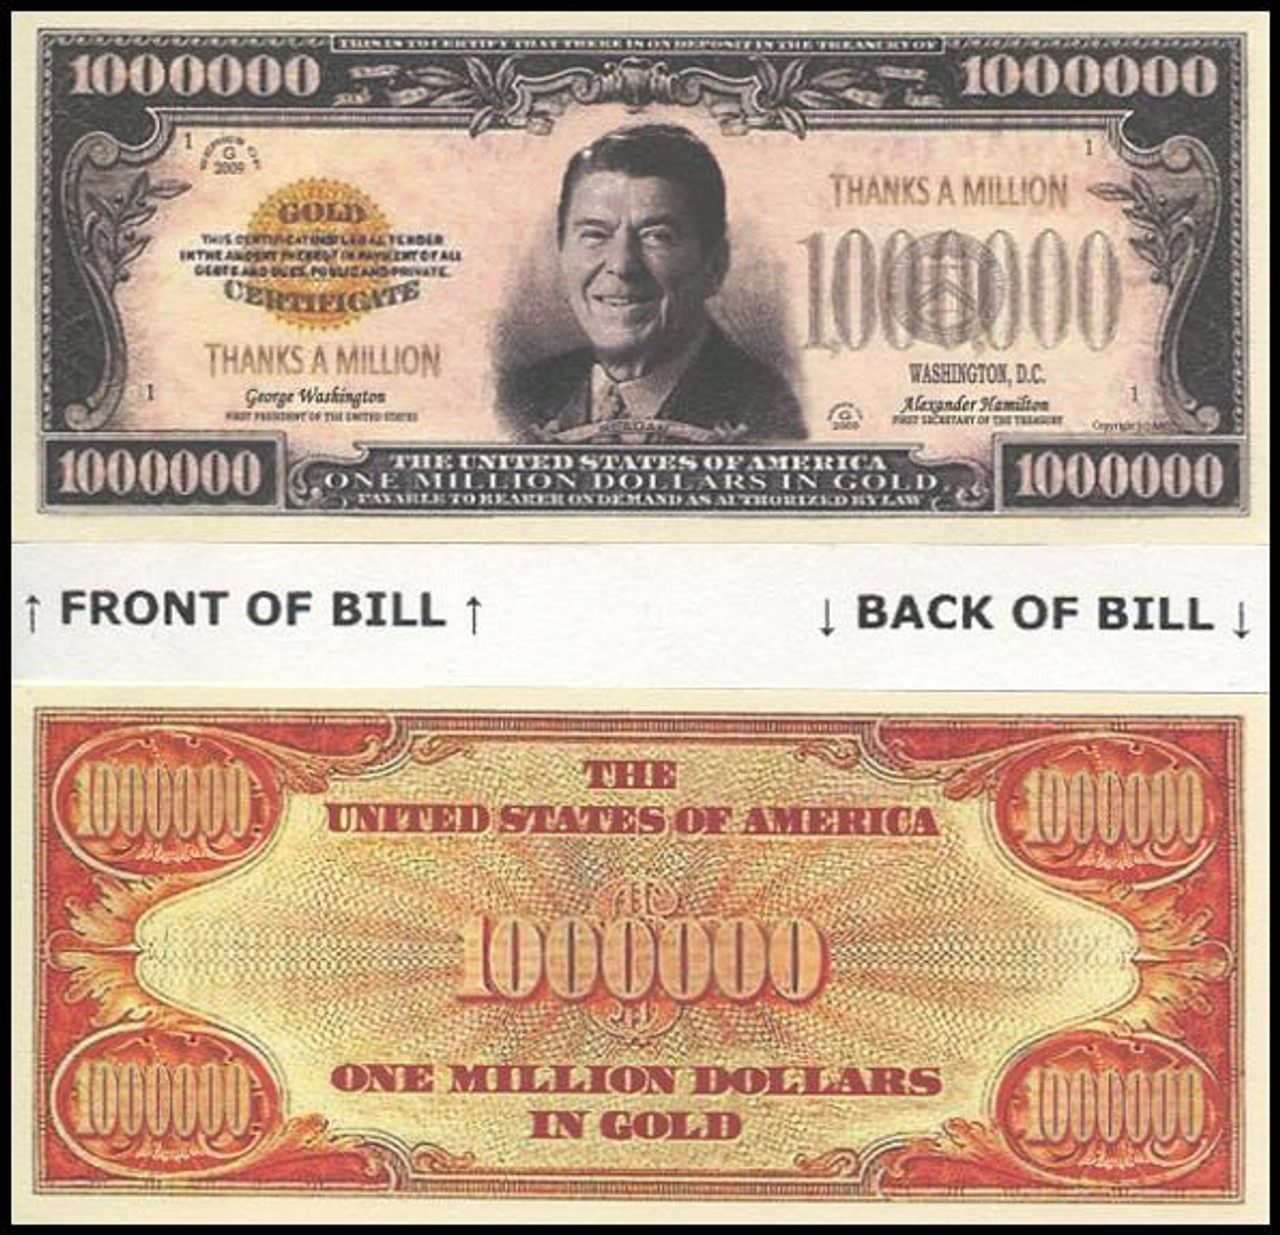 President Ronald Reagan Thanks A Million Memorial Novelty Commemorative Dollar Bill First Day Covers Online